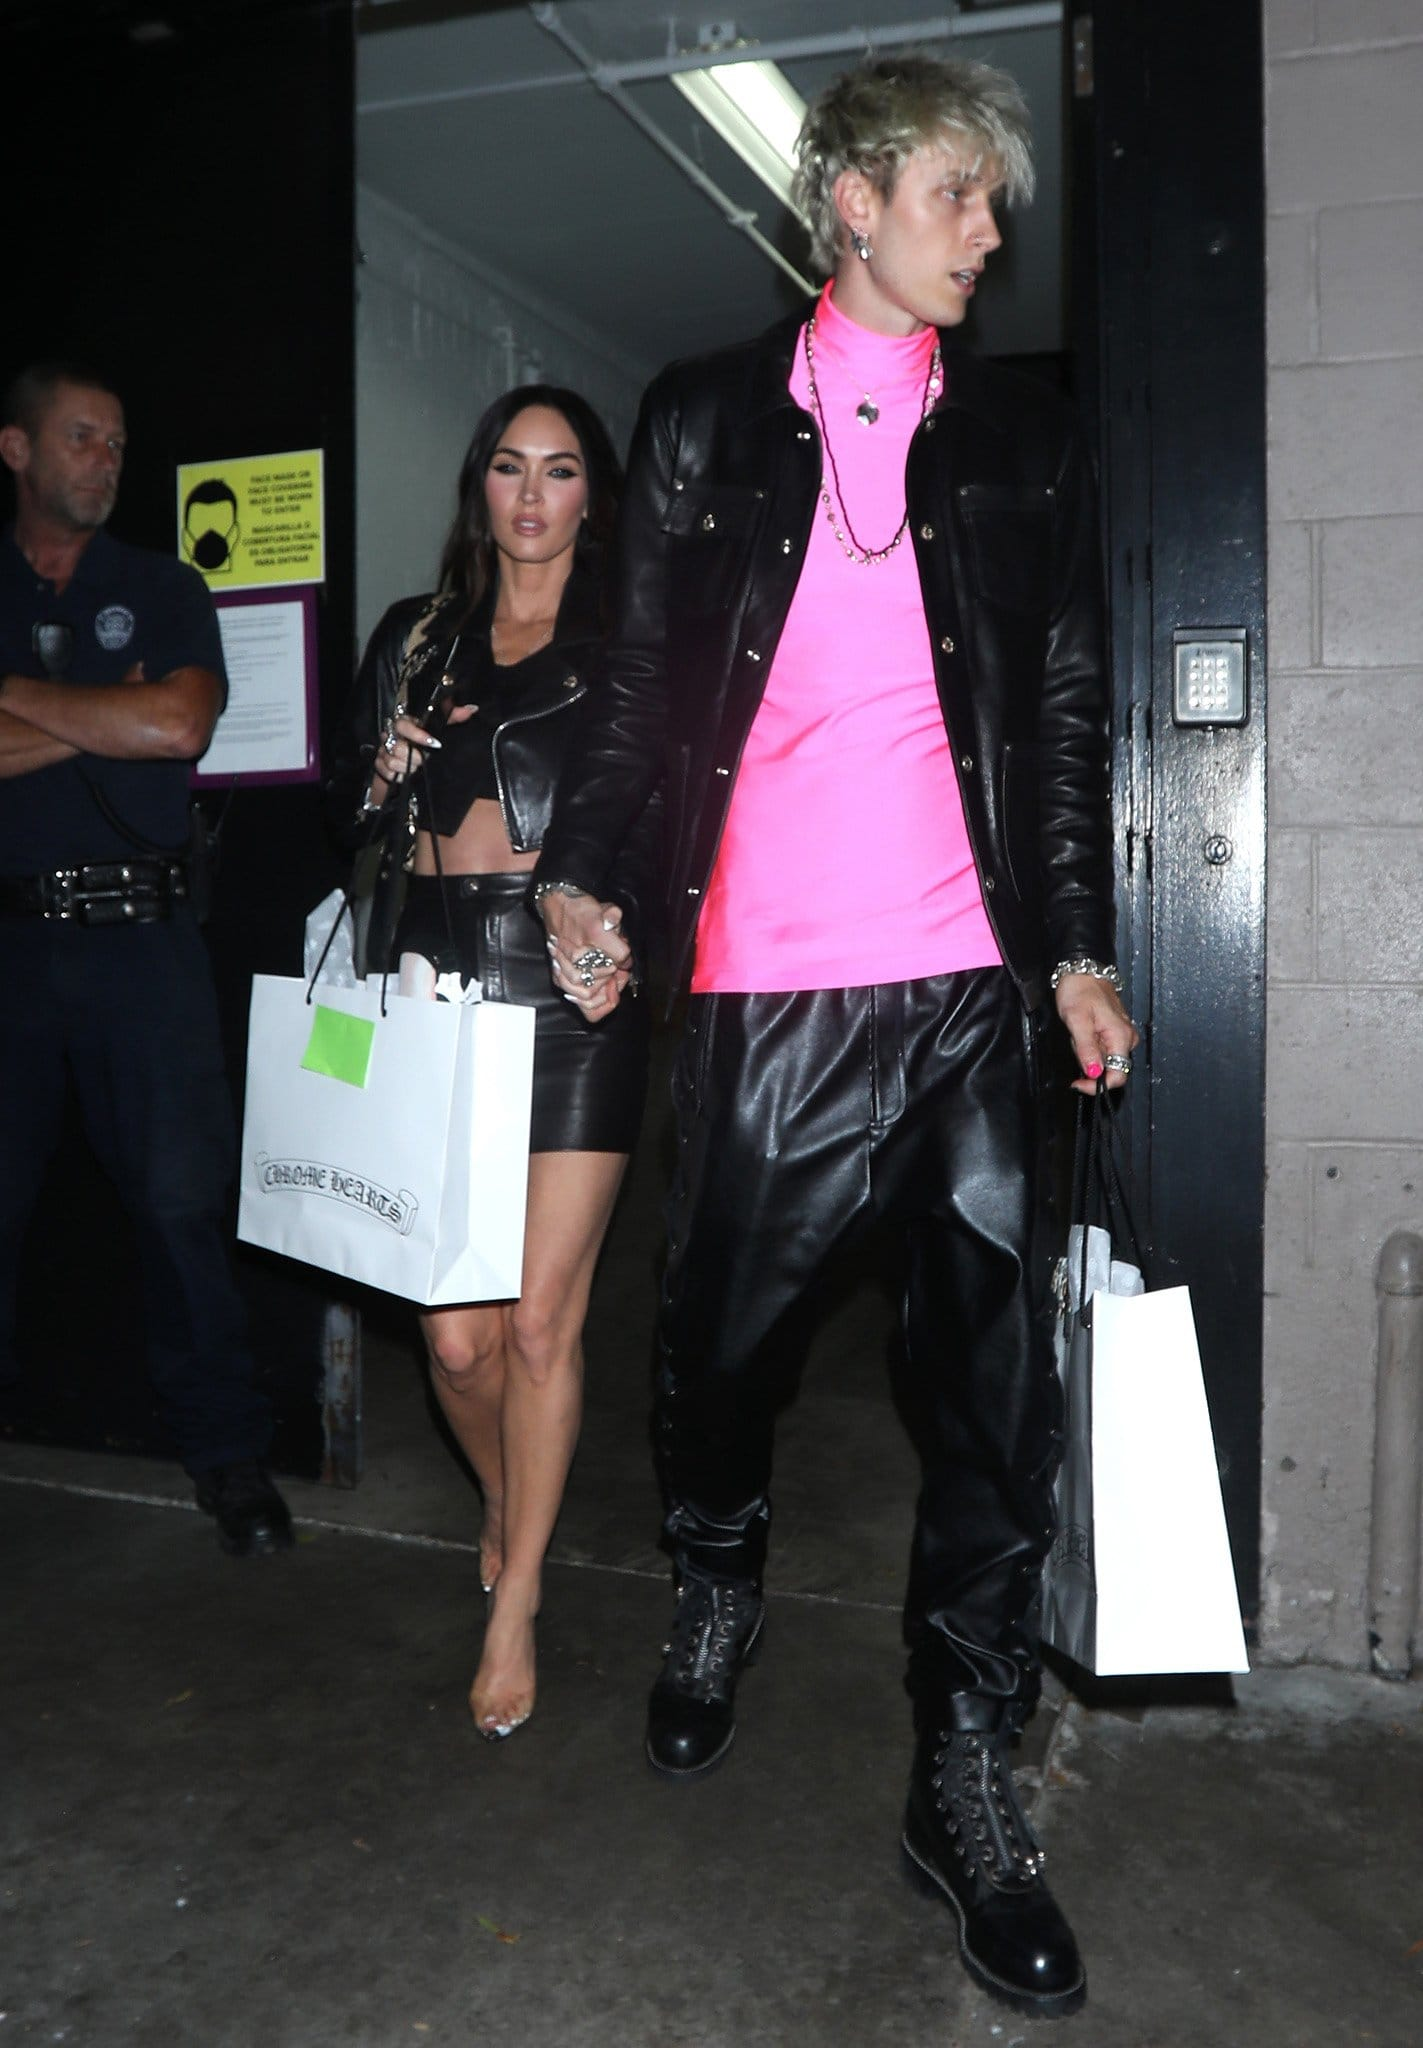 Machine Gun Kelly draws attention in his neon pink top with leather pants and jacket